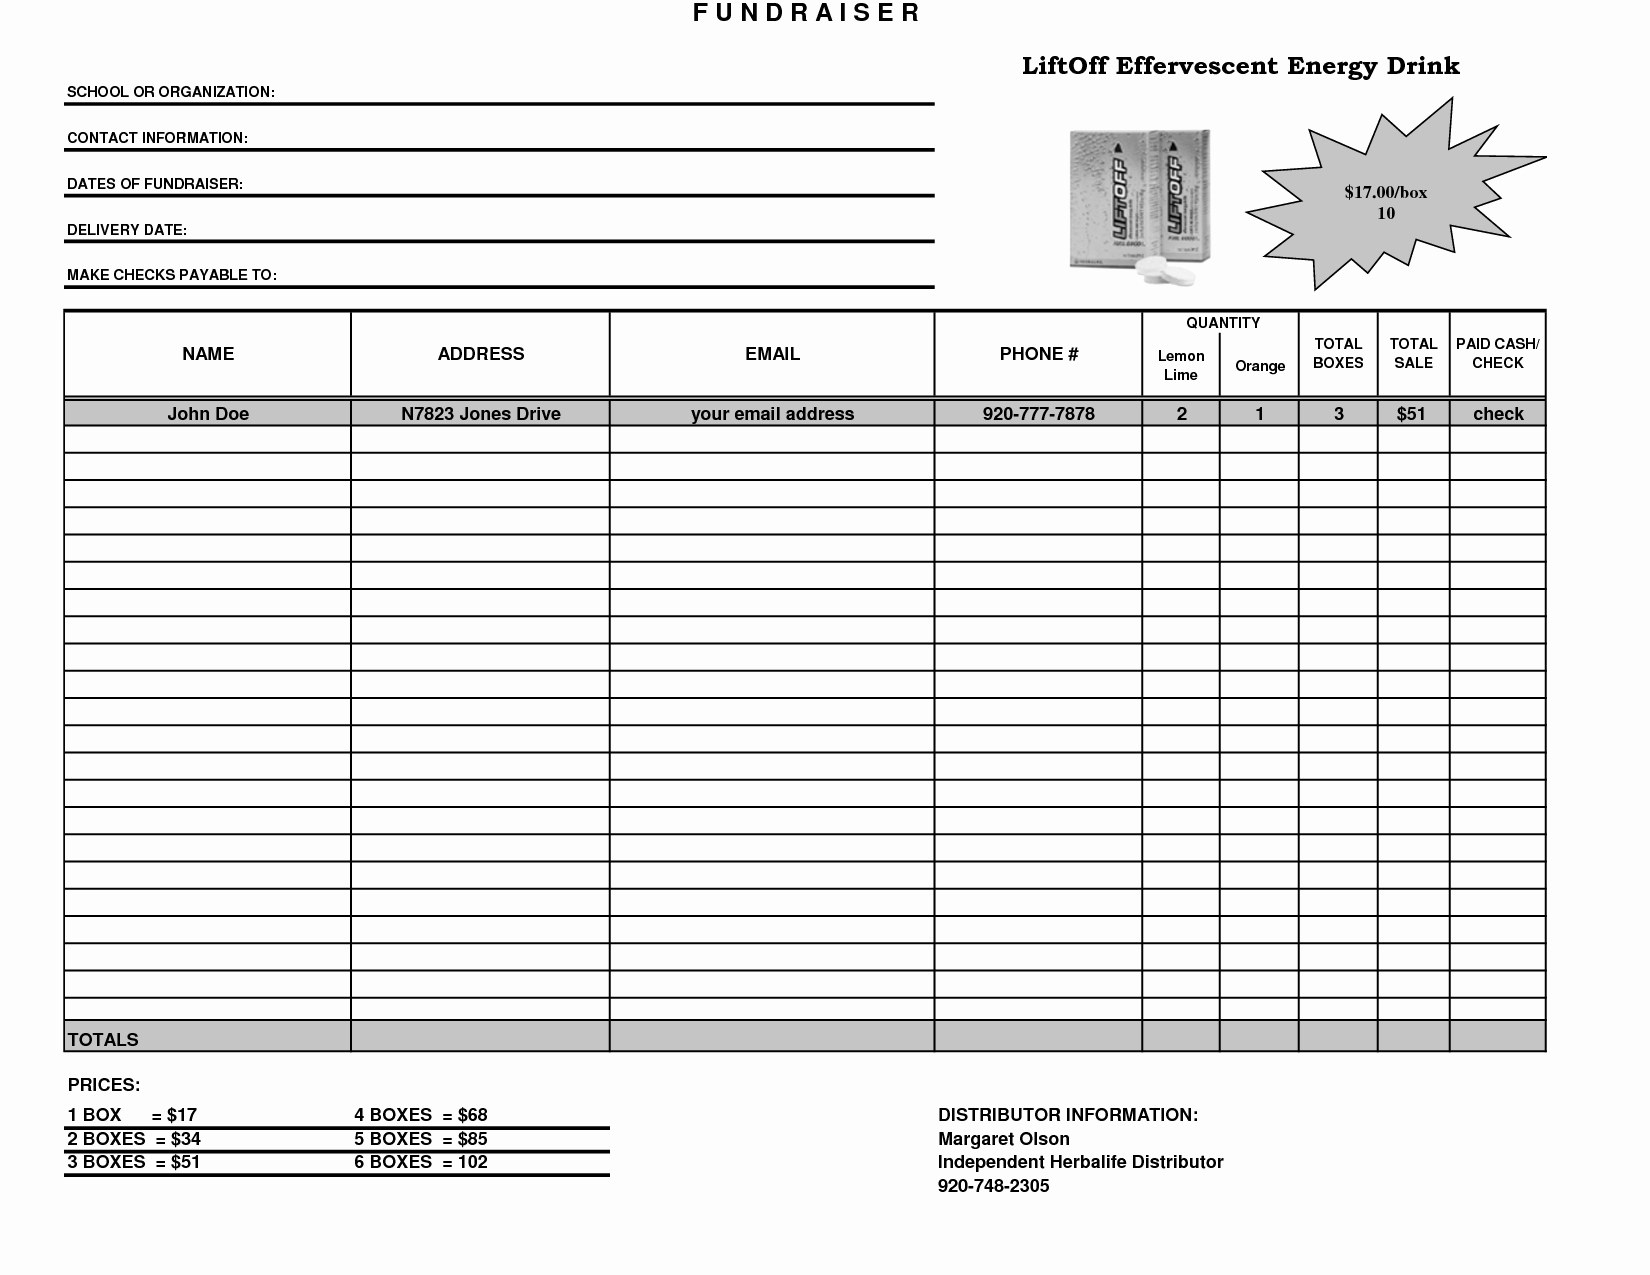 Fundraising order form Templates Unique Fundraiser Template Excel Fundraiser order form Template